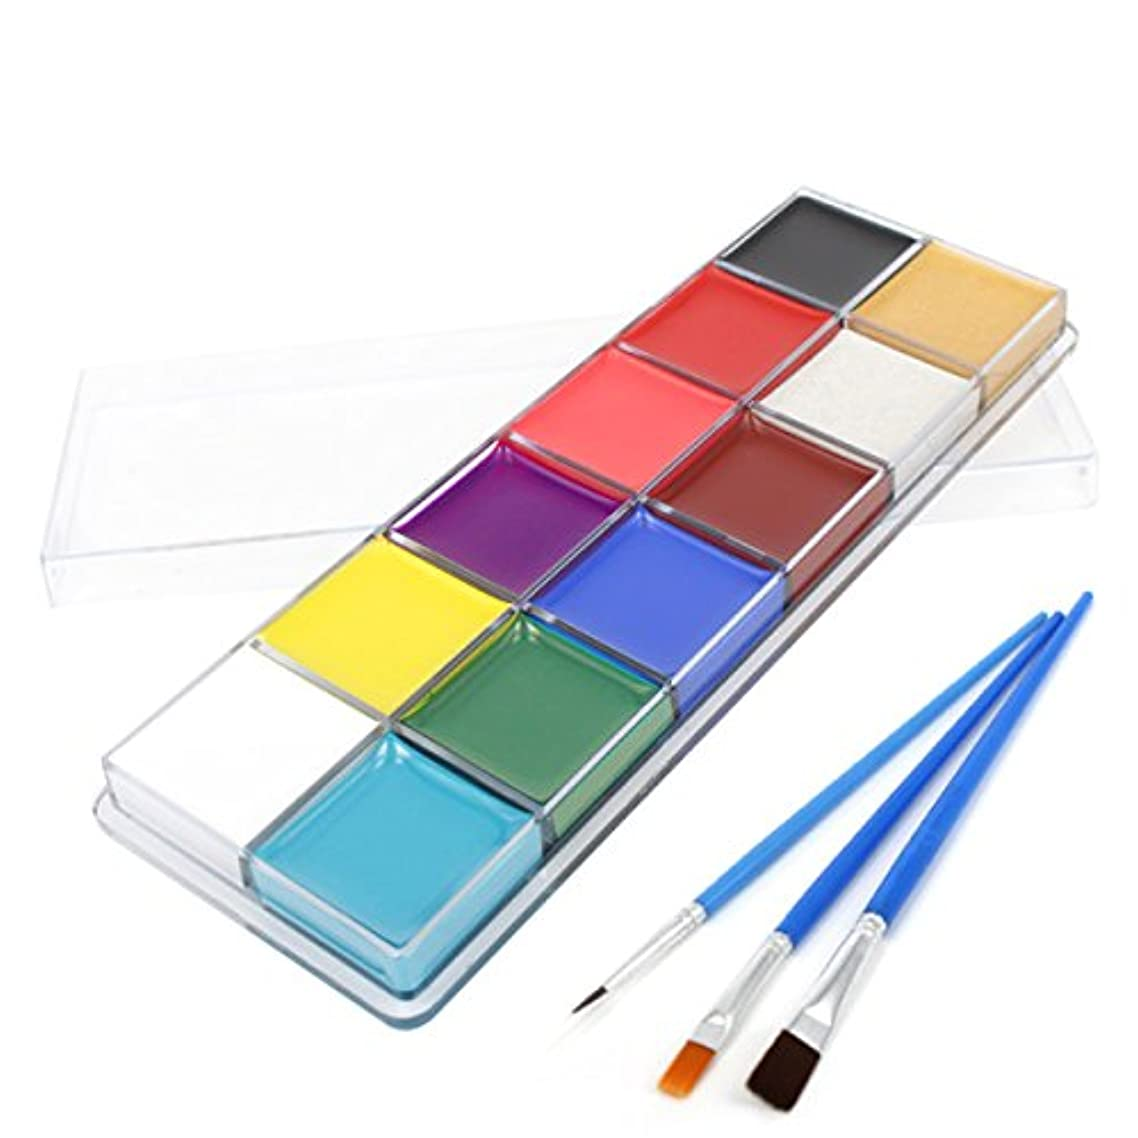 土地どうやら曲げるBeaupretty Face Painting Kits Professional 12 Colors Art Party Fancy Make Up Set with brush